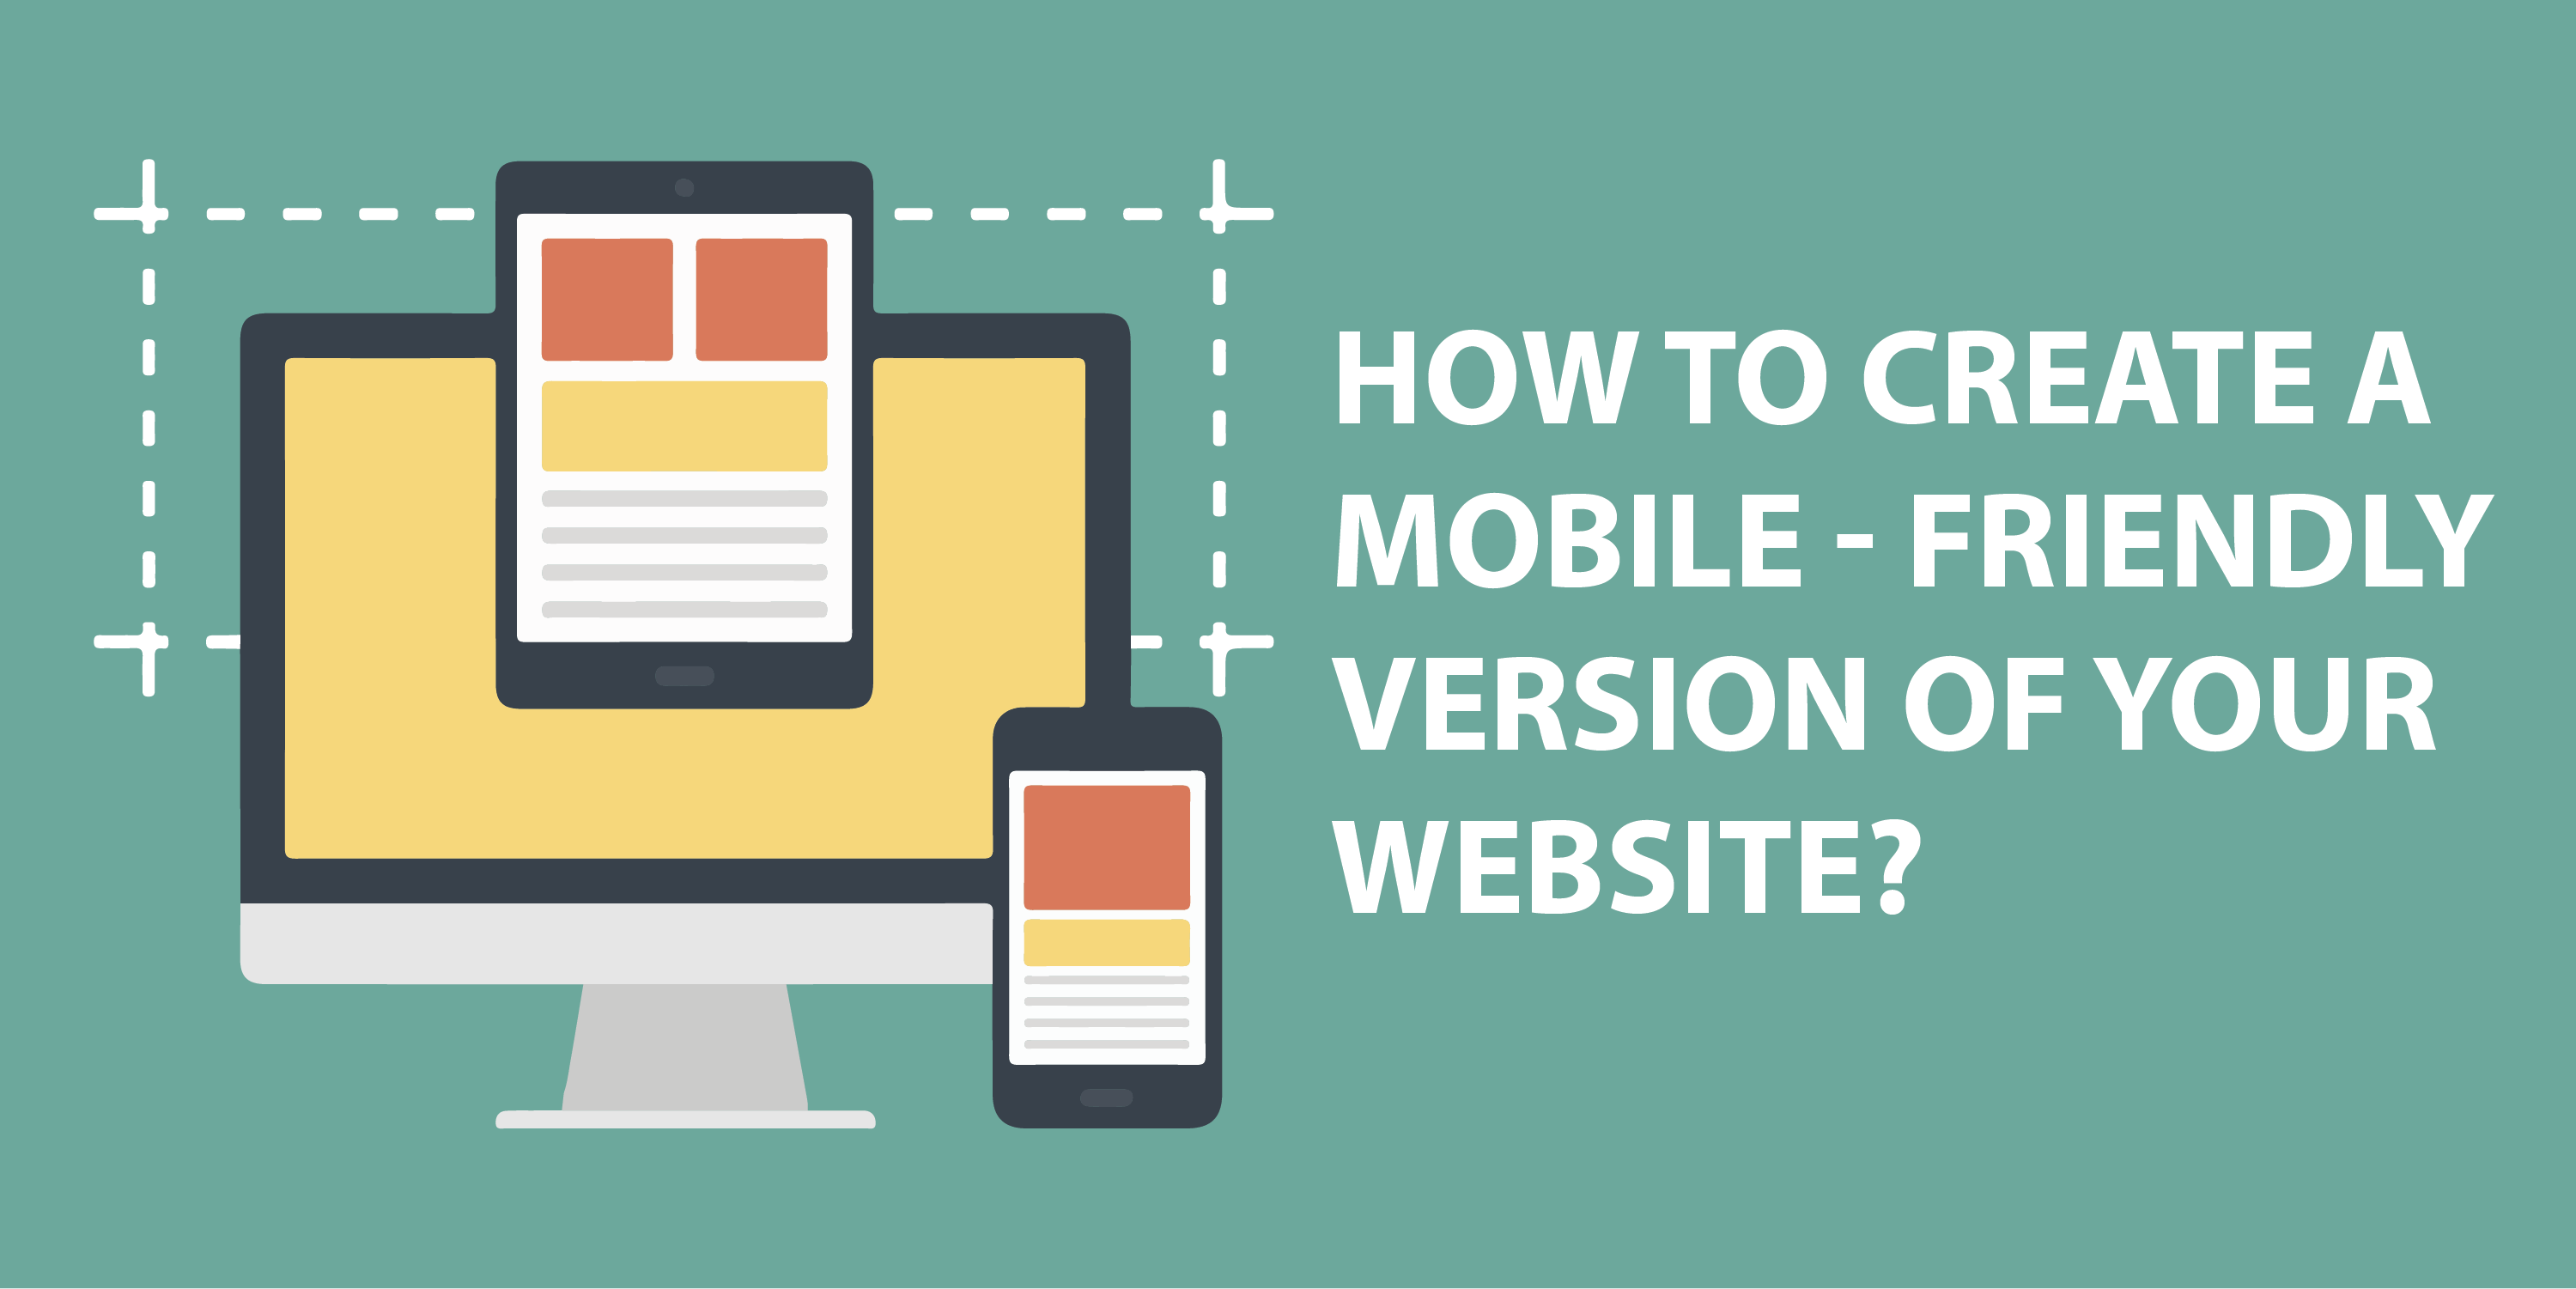 HOW TO CREATE A MOBILE-FRIENDLY VERSION OF YOUR WEBSITE